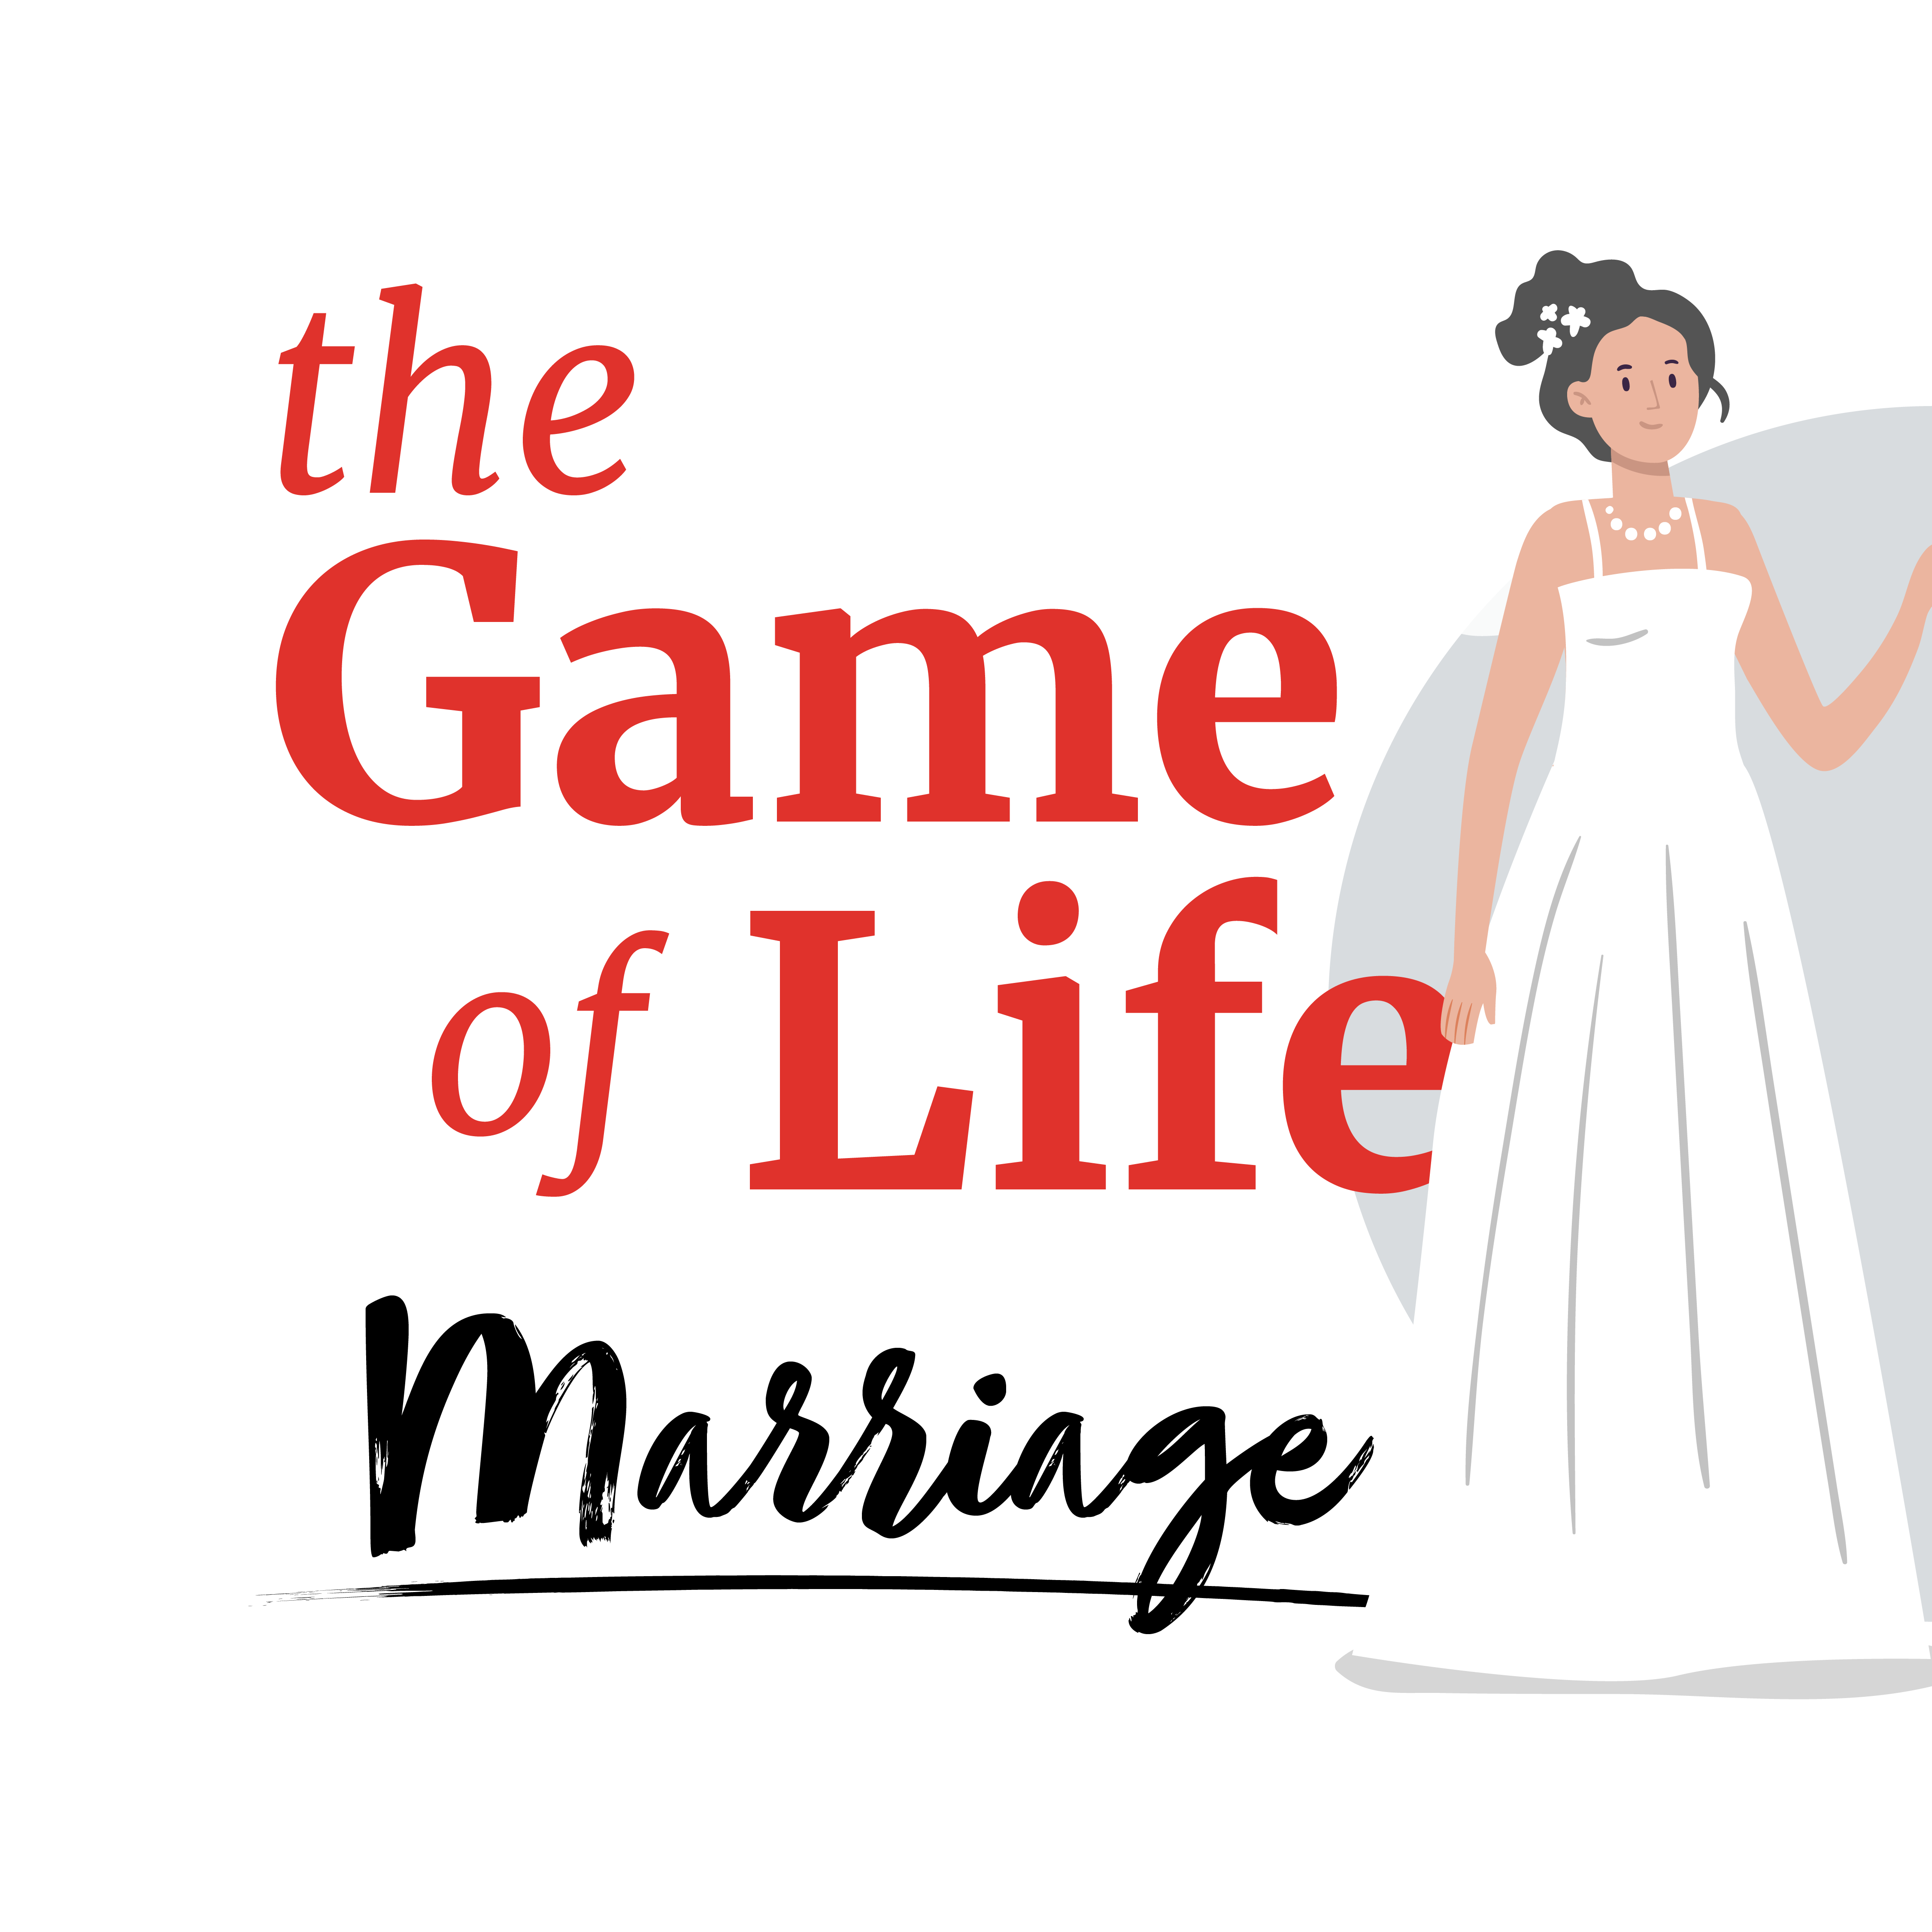 The Game of Life - Marriage